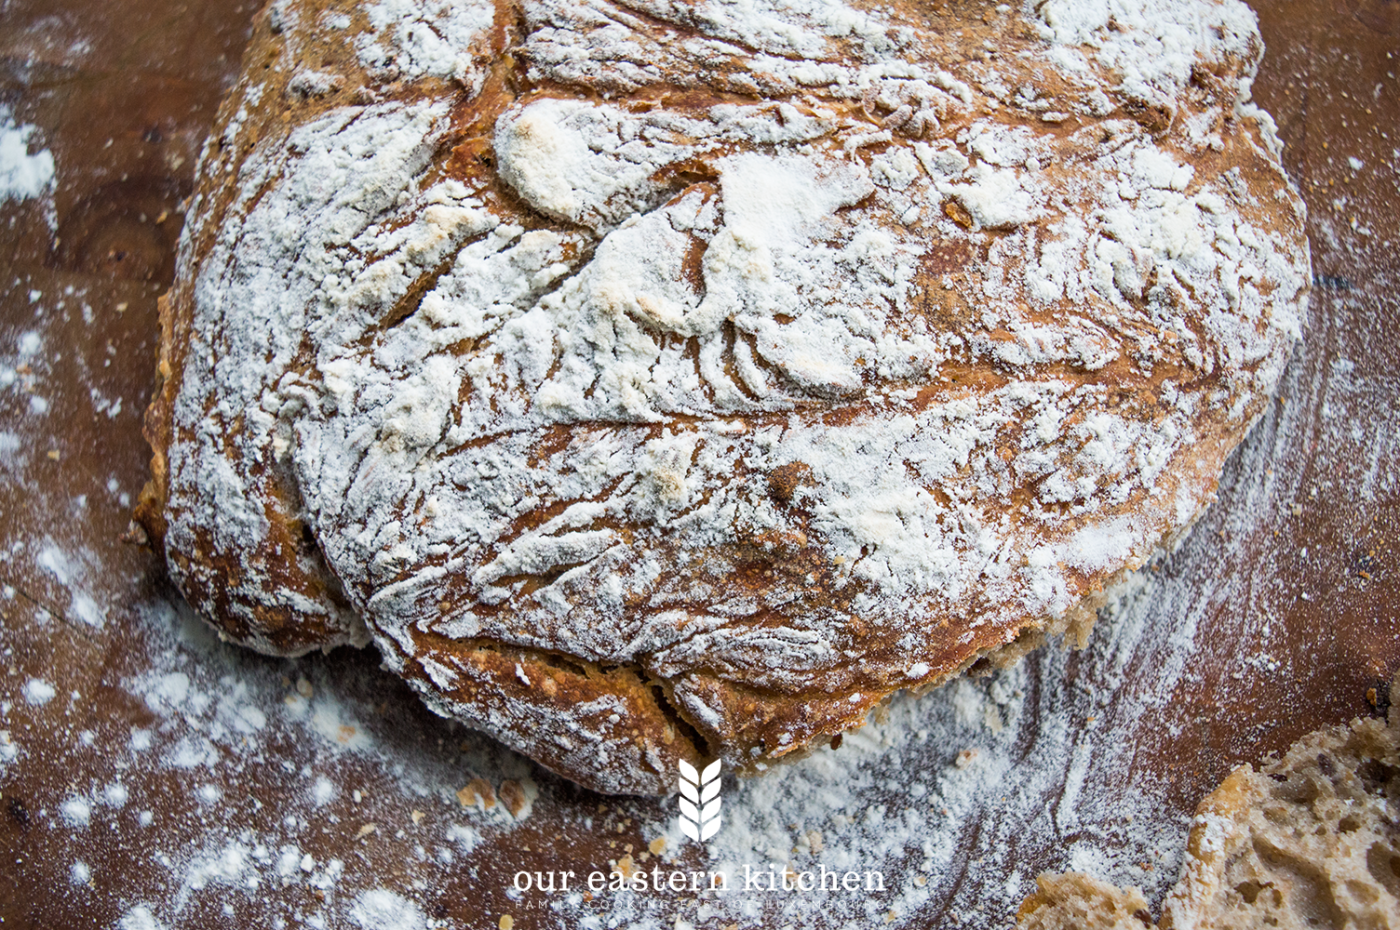 Our Eastern Kitchen - Easy Sourdough Bread - Recipe - Food Photography